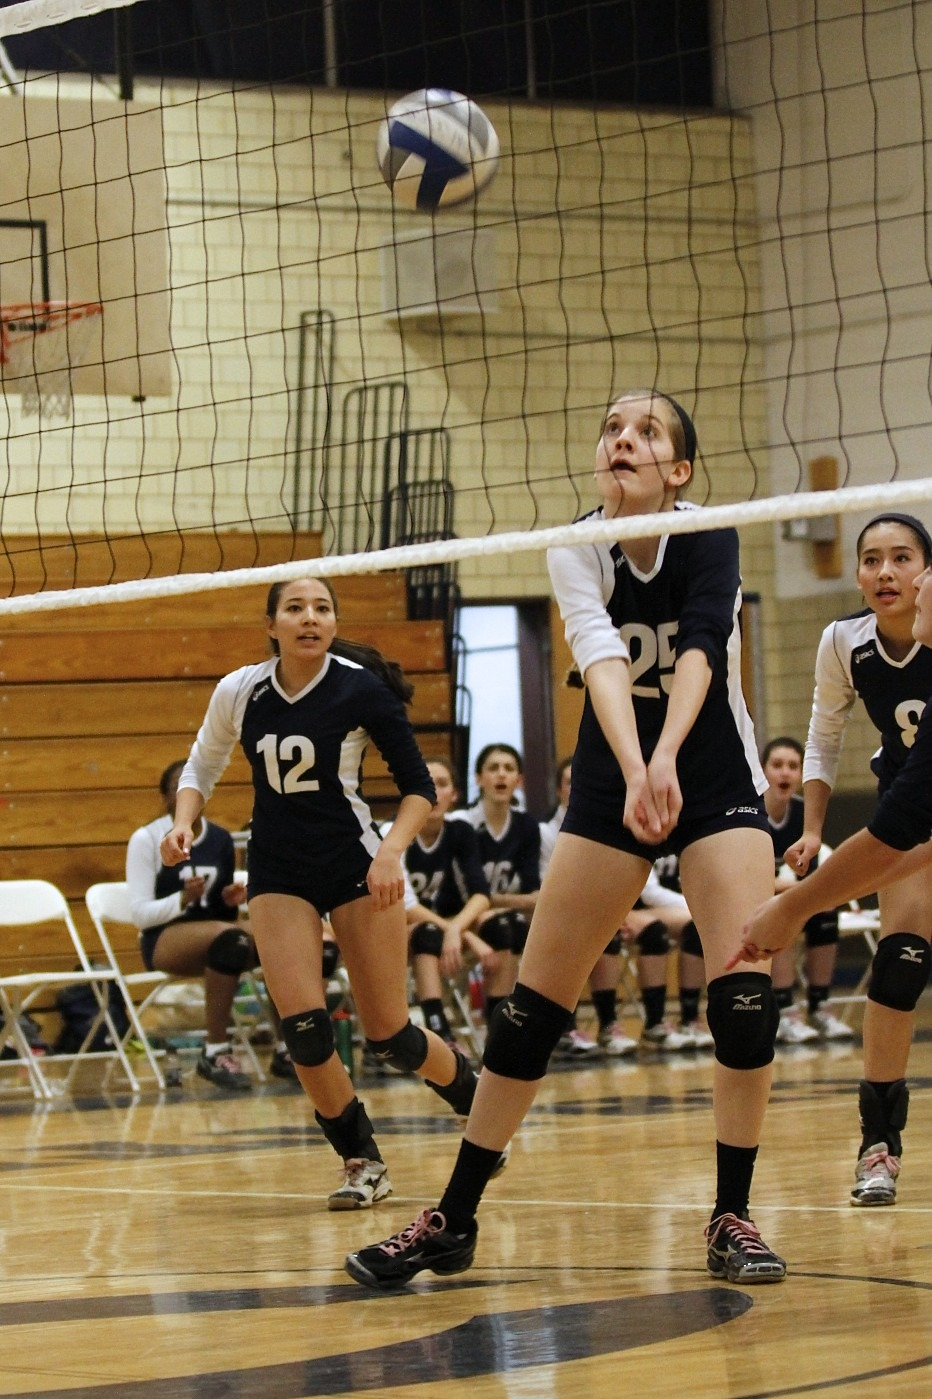 3b5f720b51c3b3ee3611_Chatham_Girls_Volleyball_6456.jpg